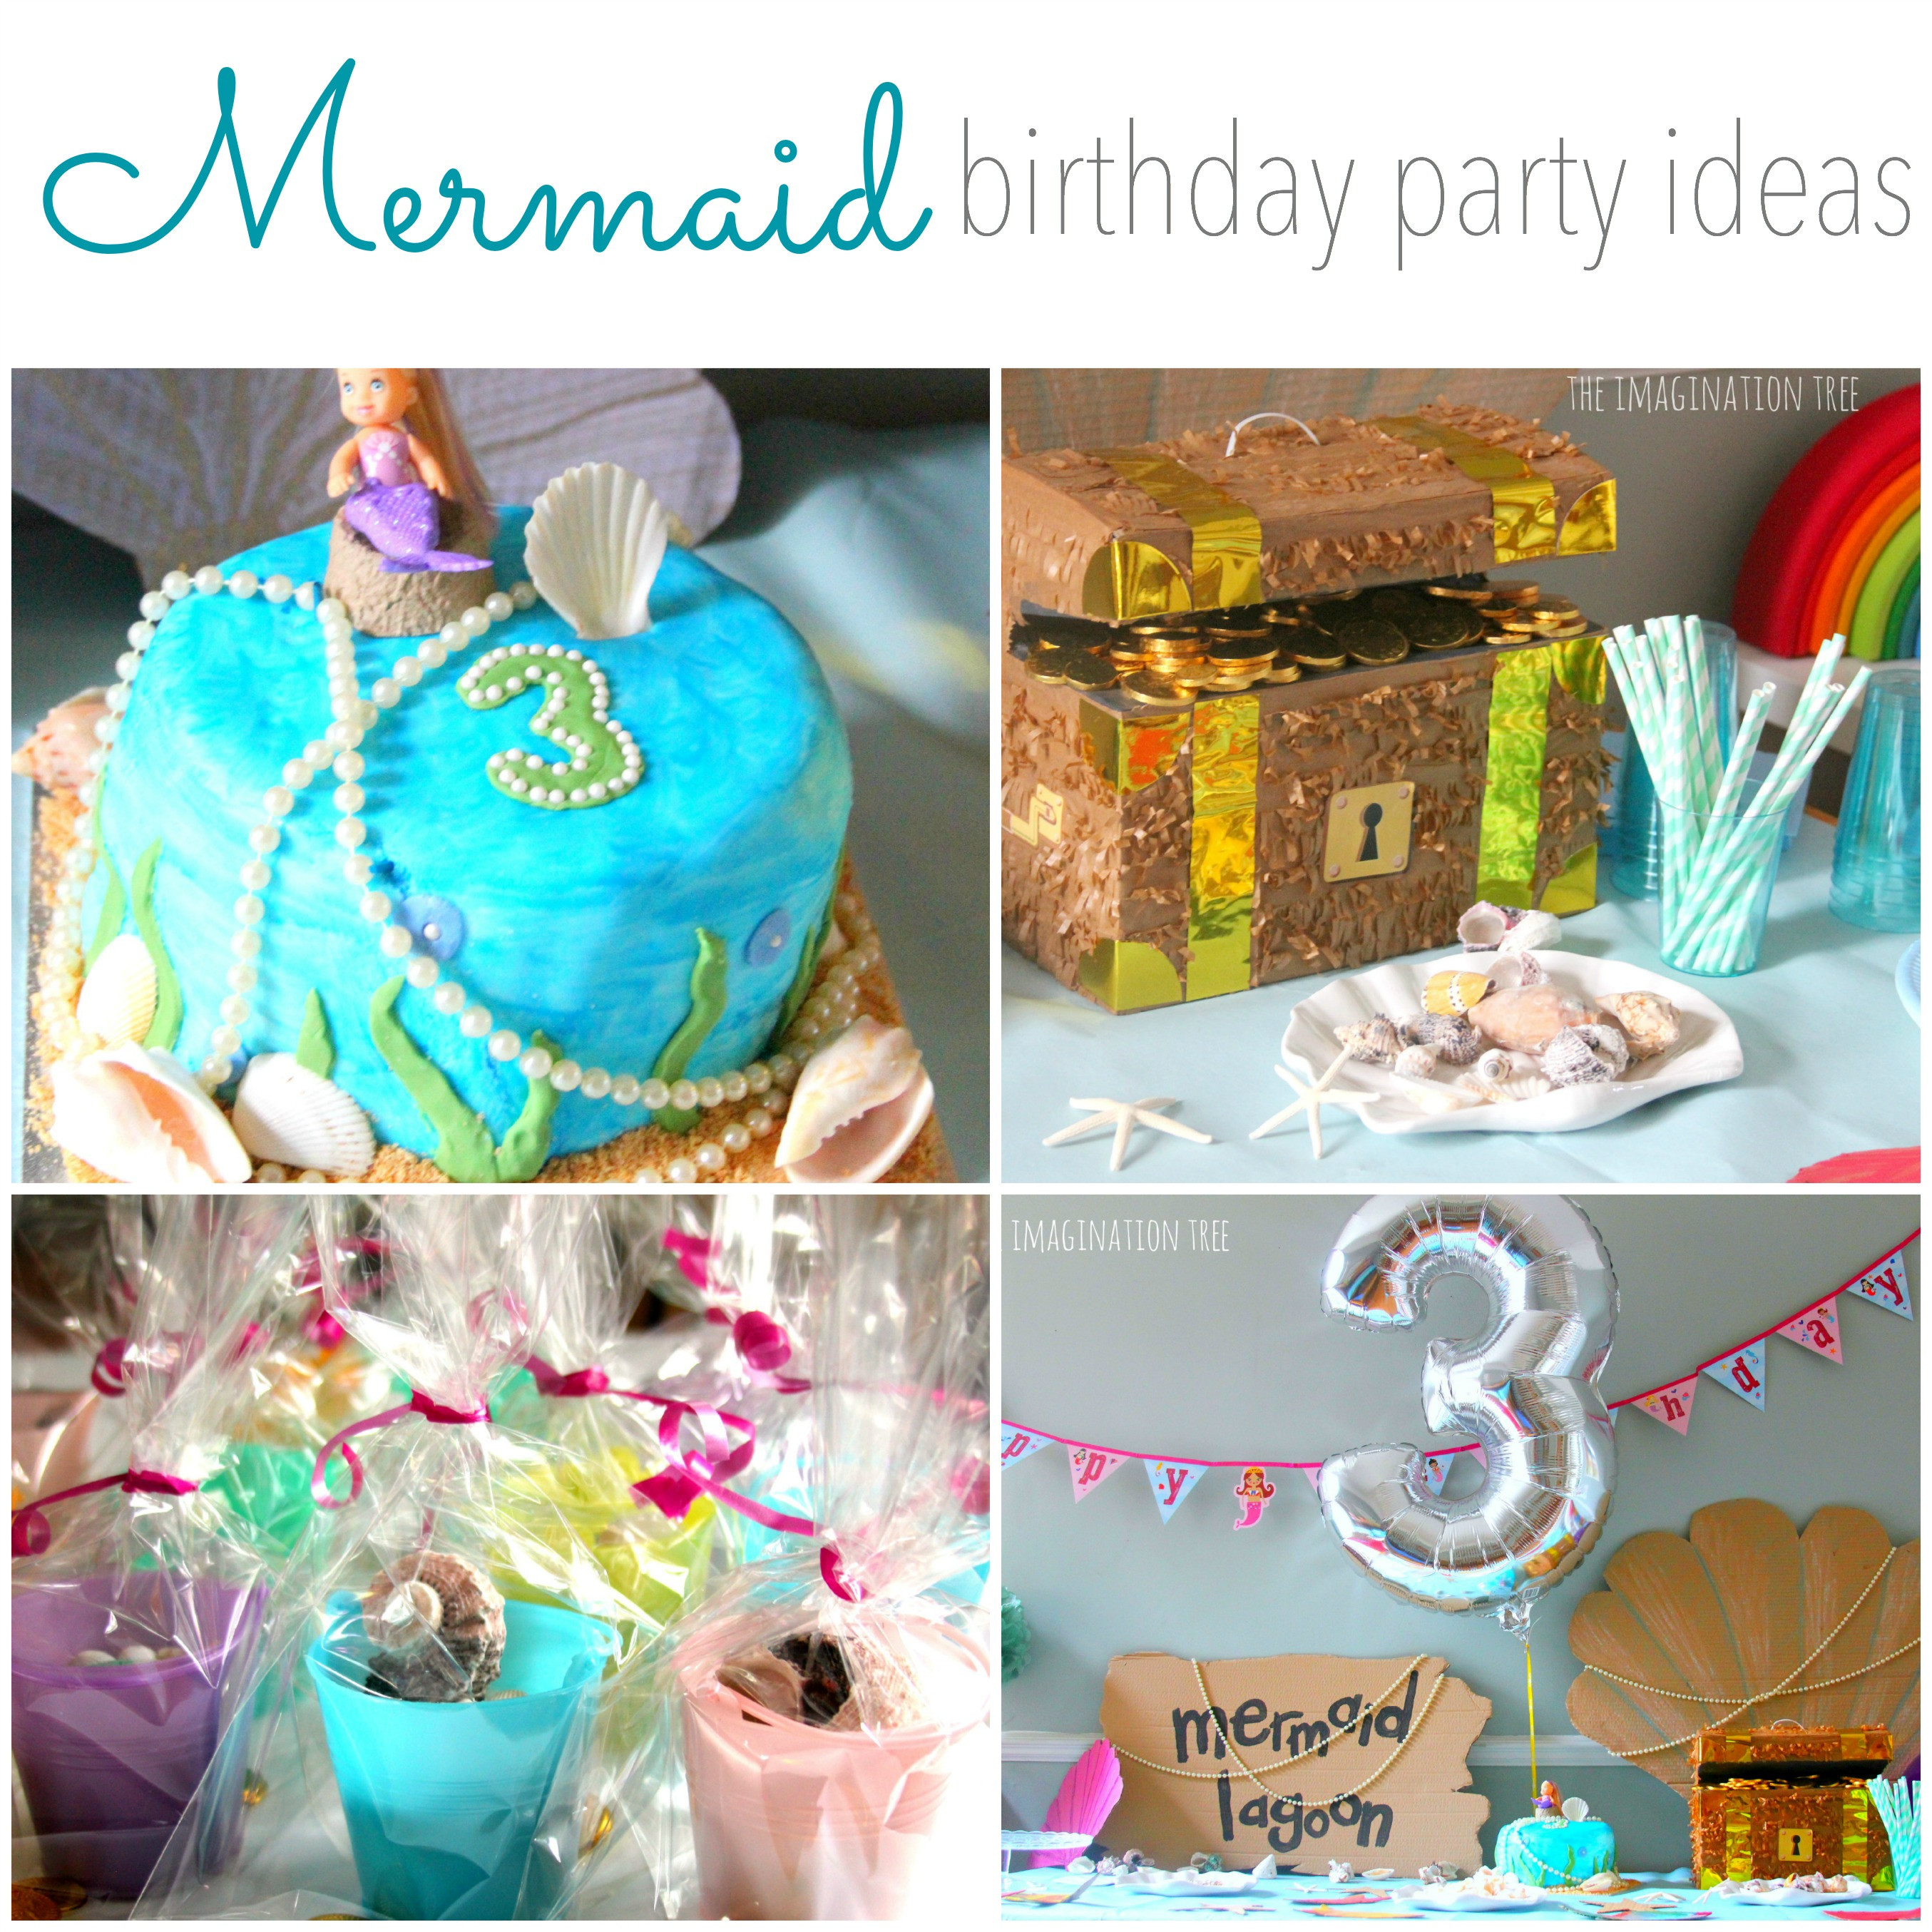 Best ideas about Mermaid Birthday Party Decorations . Save or Pin Mermaid Birthday Party Ideas The Imagination Tree Now.